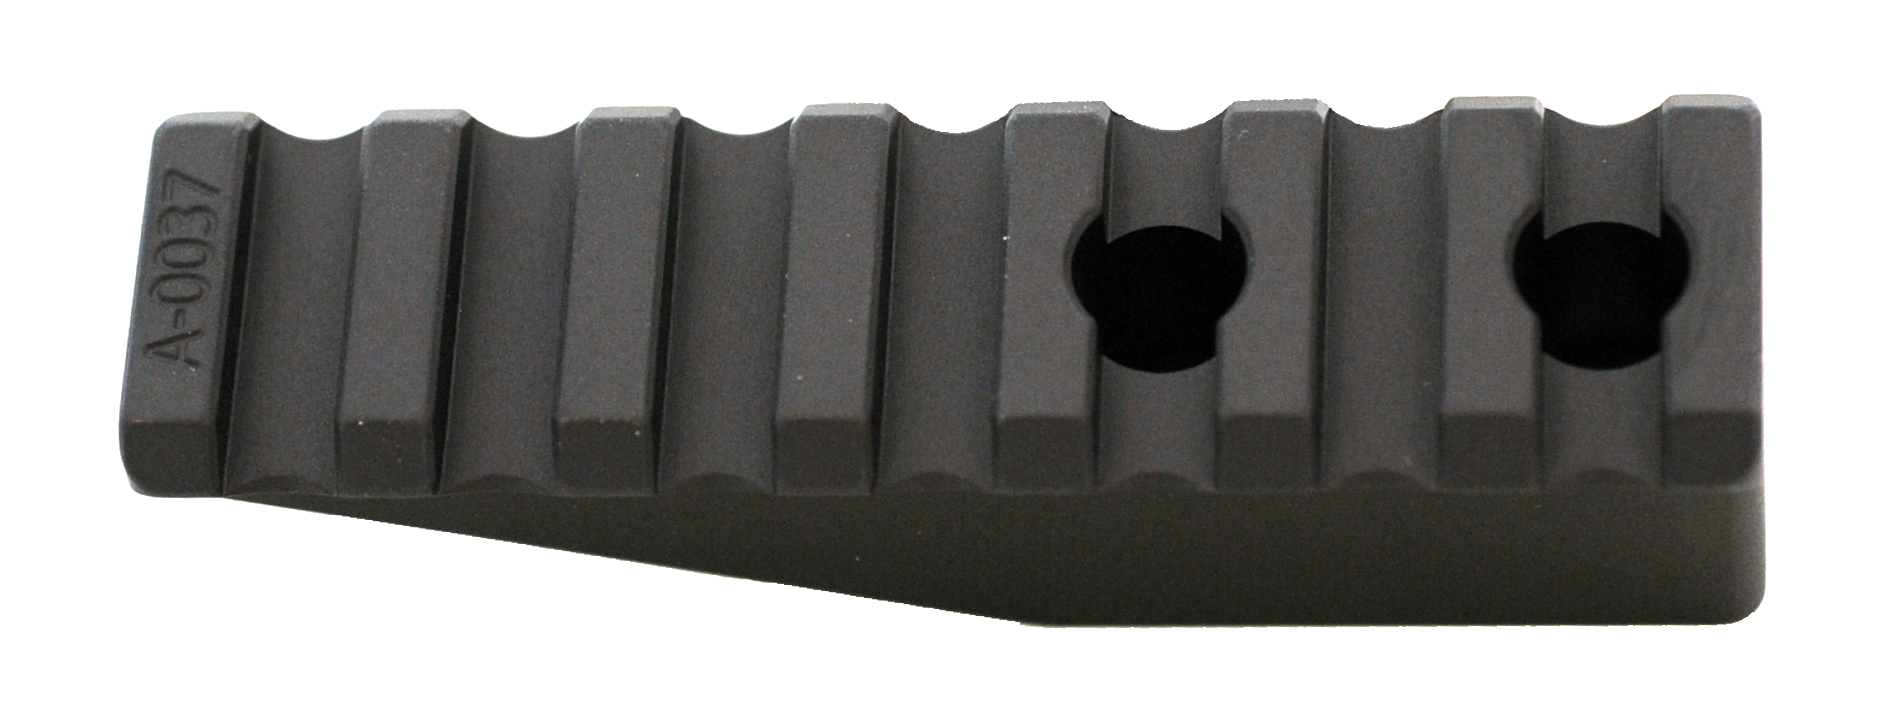 A-0037 Picatinny Rail 20x75 mm